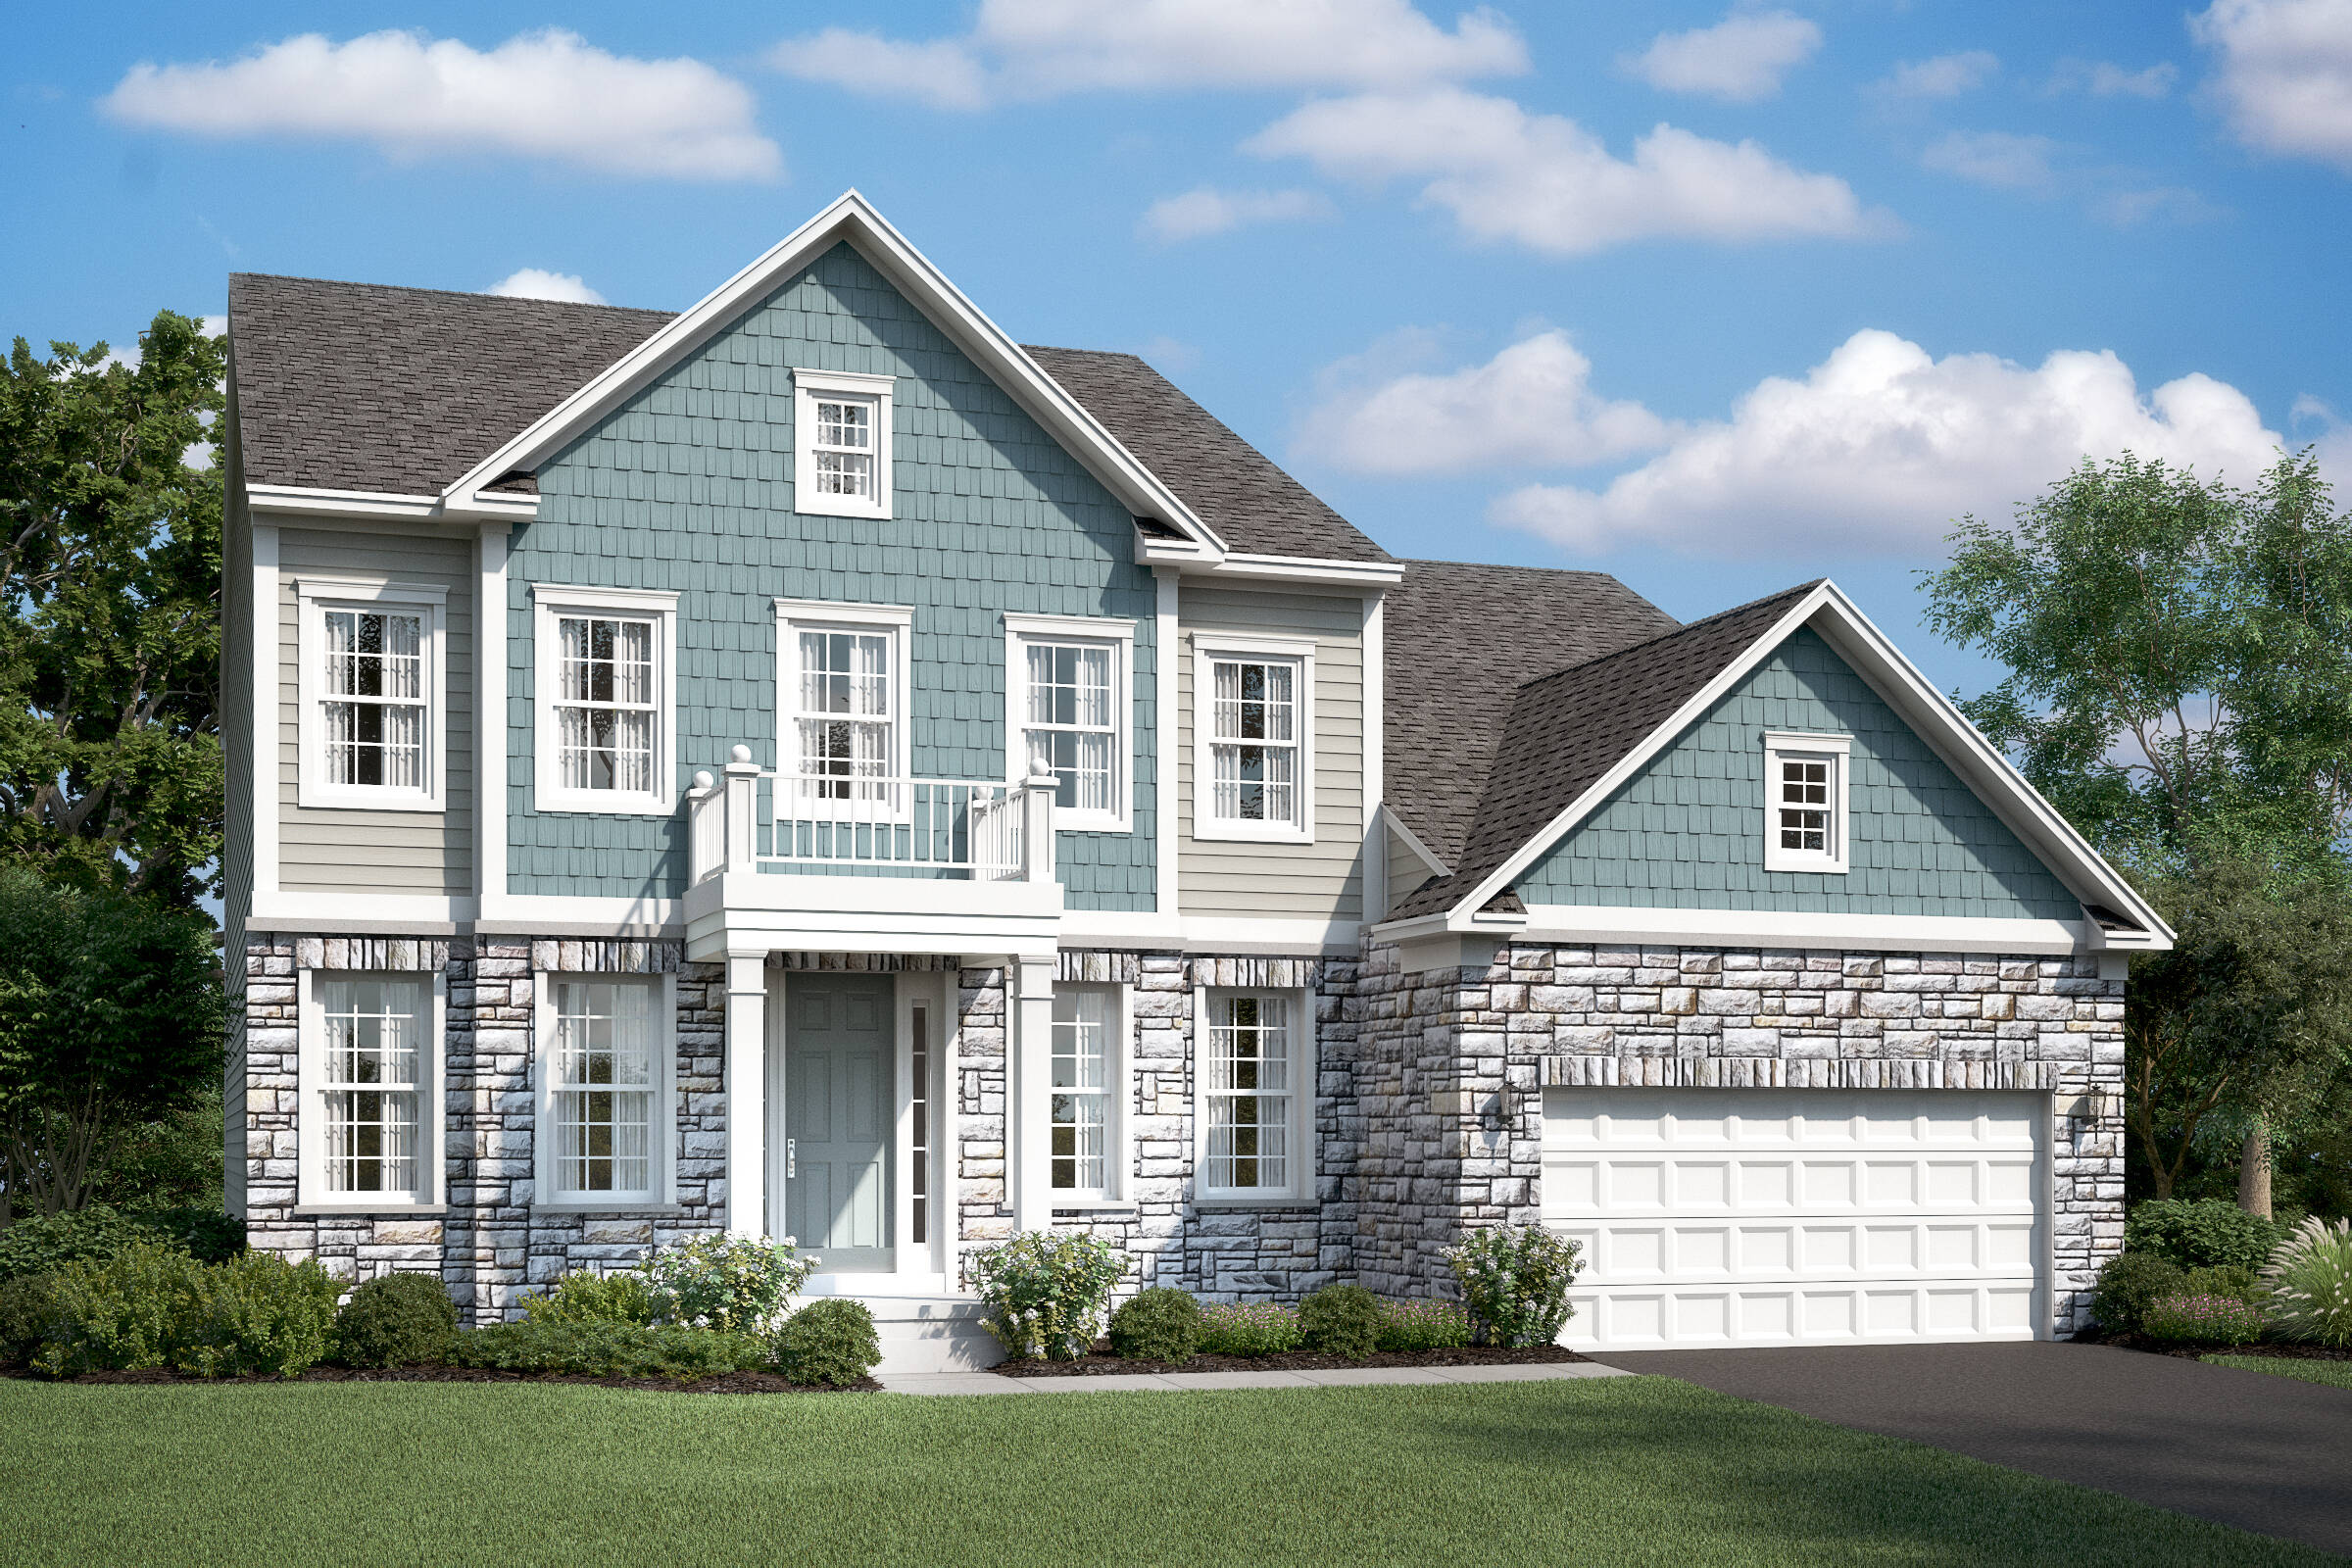 portland g new homes at burke junction in virginia